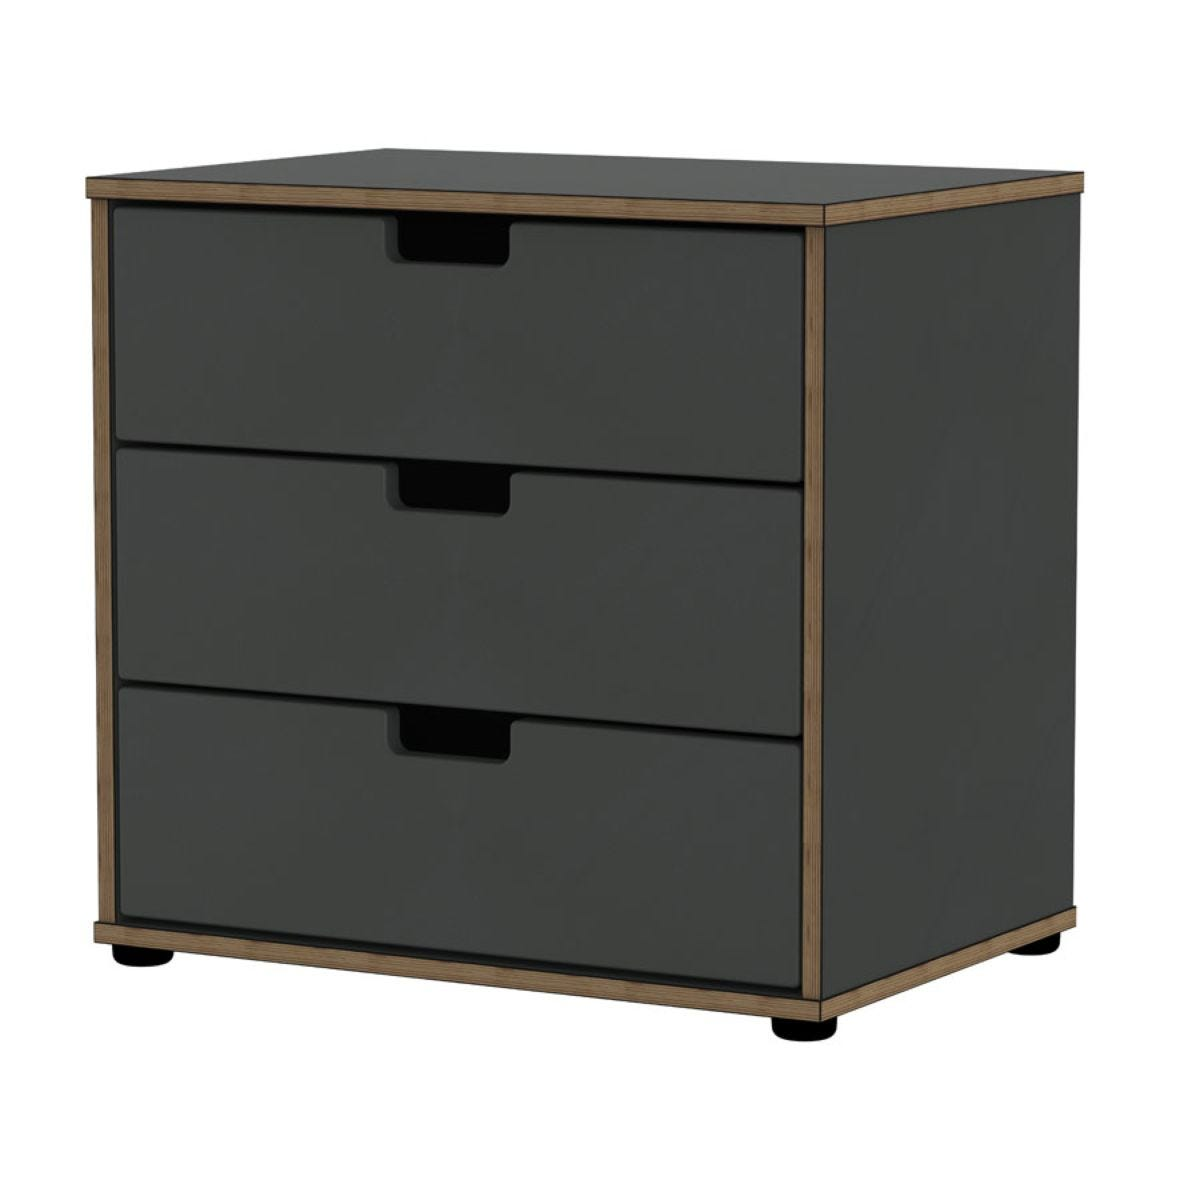 Jeoka 3-Drawer Chest - Black